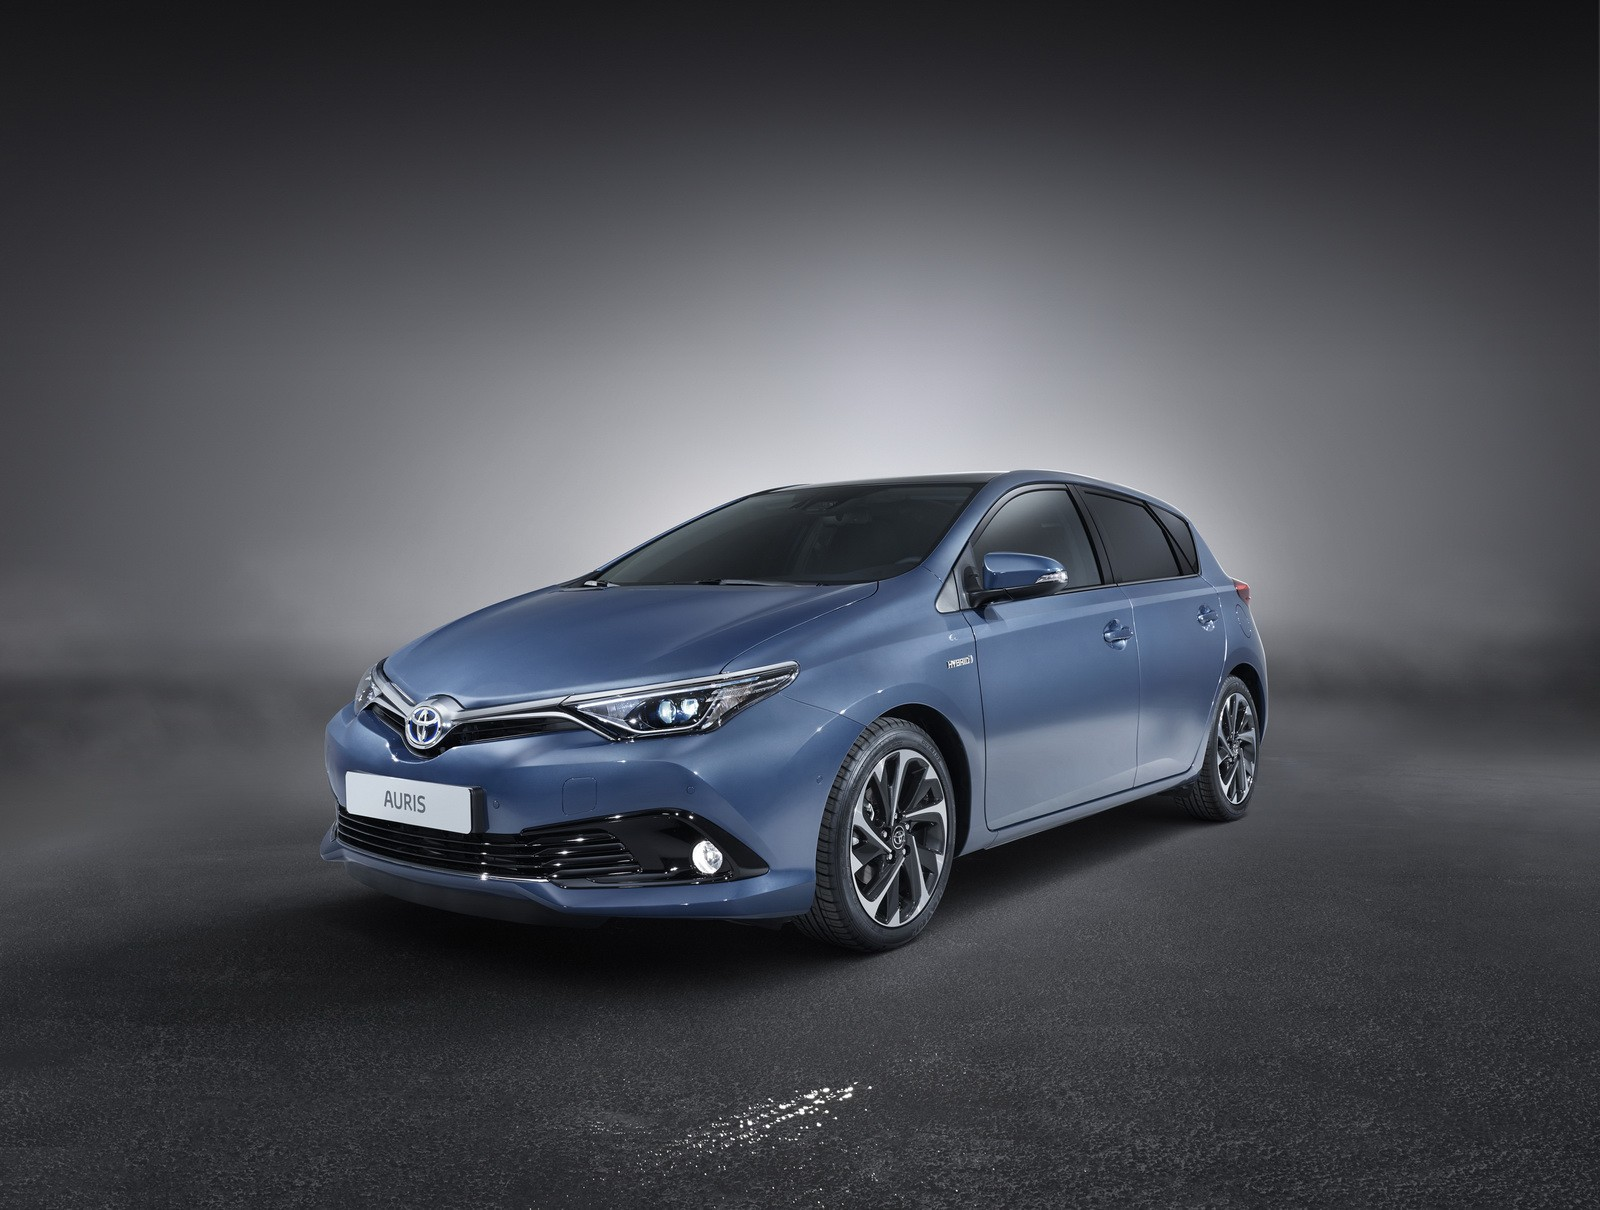 2015 toyota auris facelift shares new details about its engine lineup autoevolution. Black Bedroom Furniture Sets. Home Design Ideas